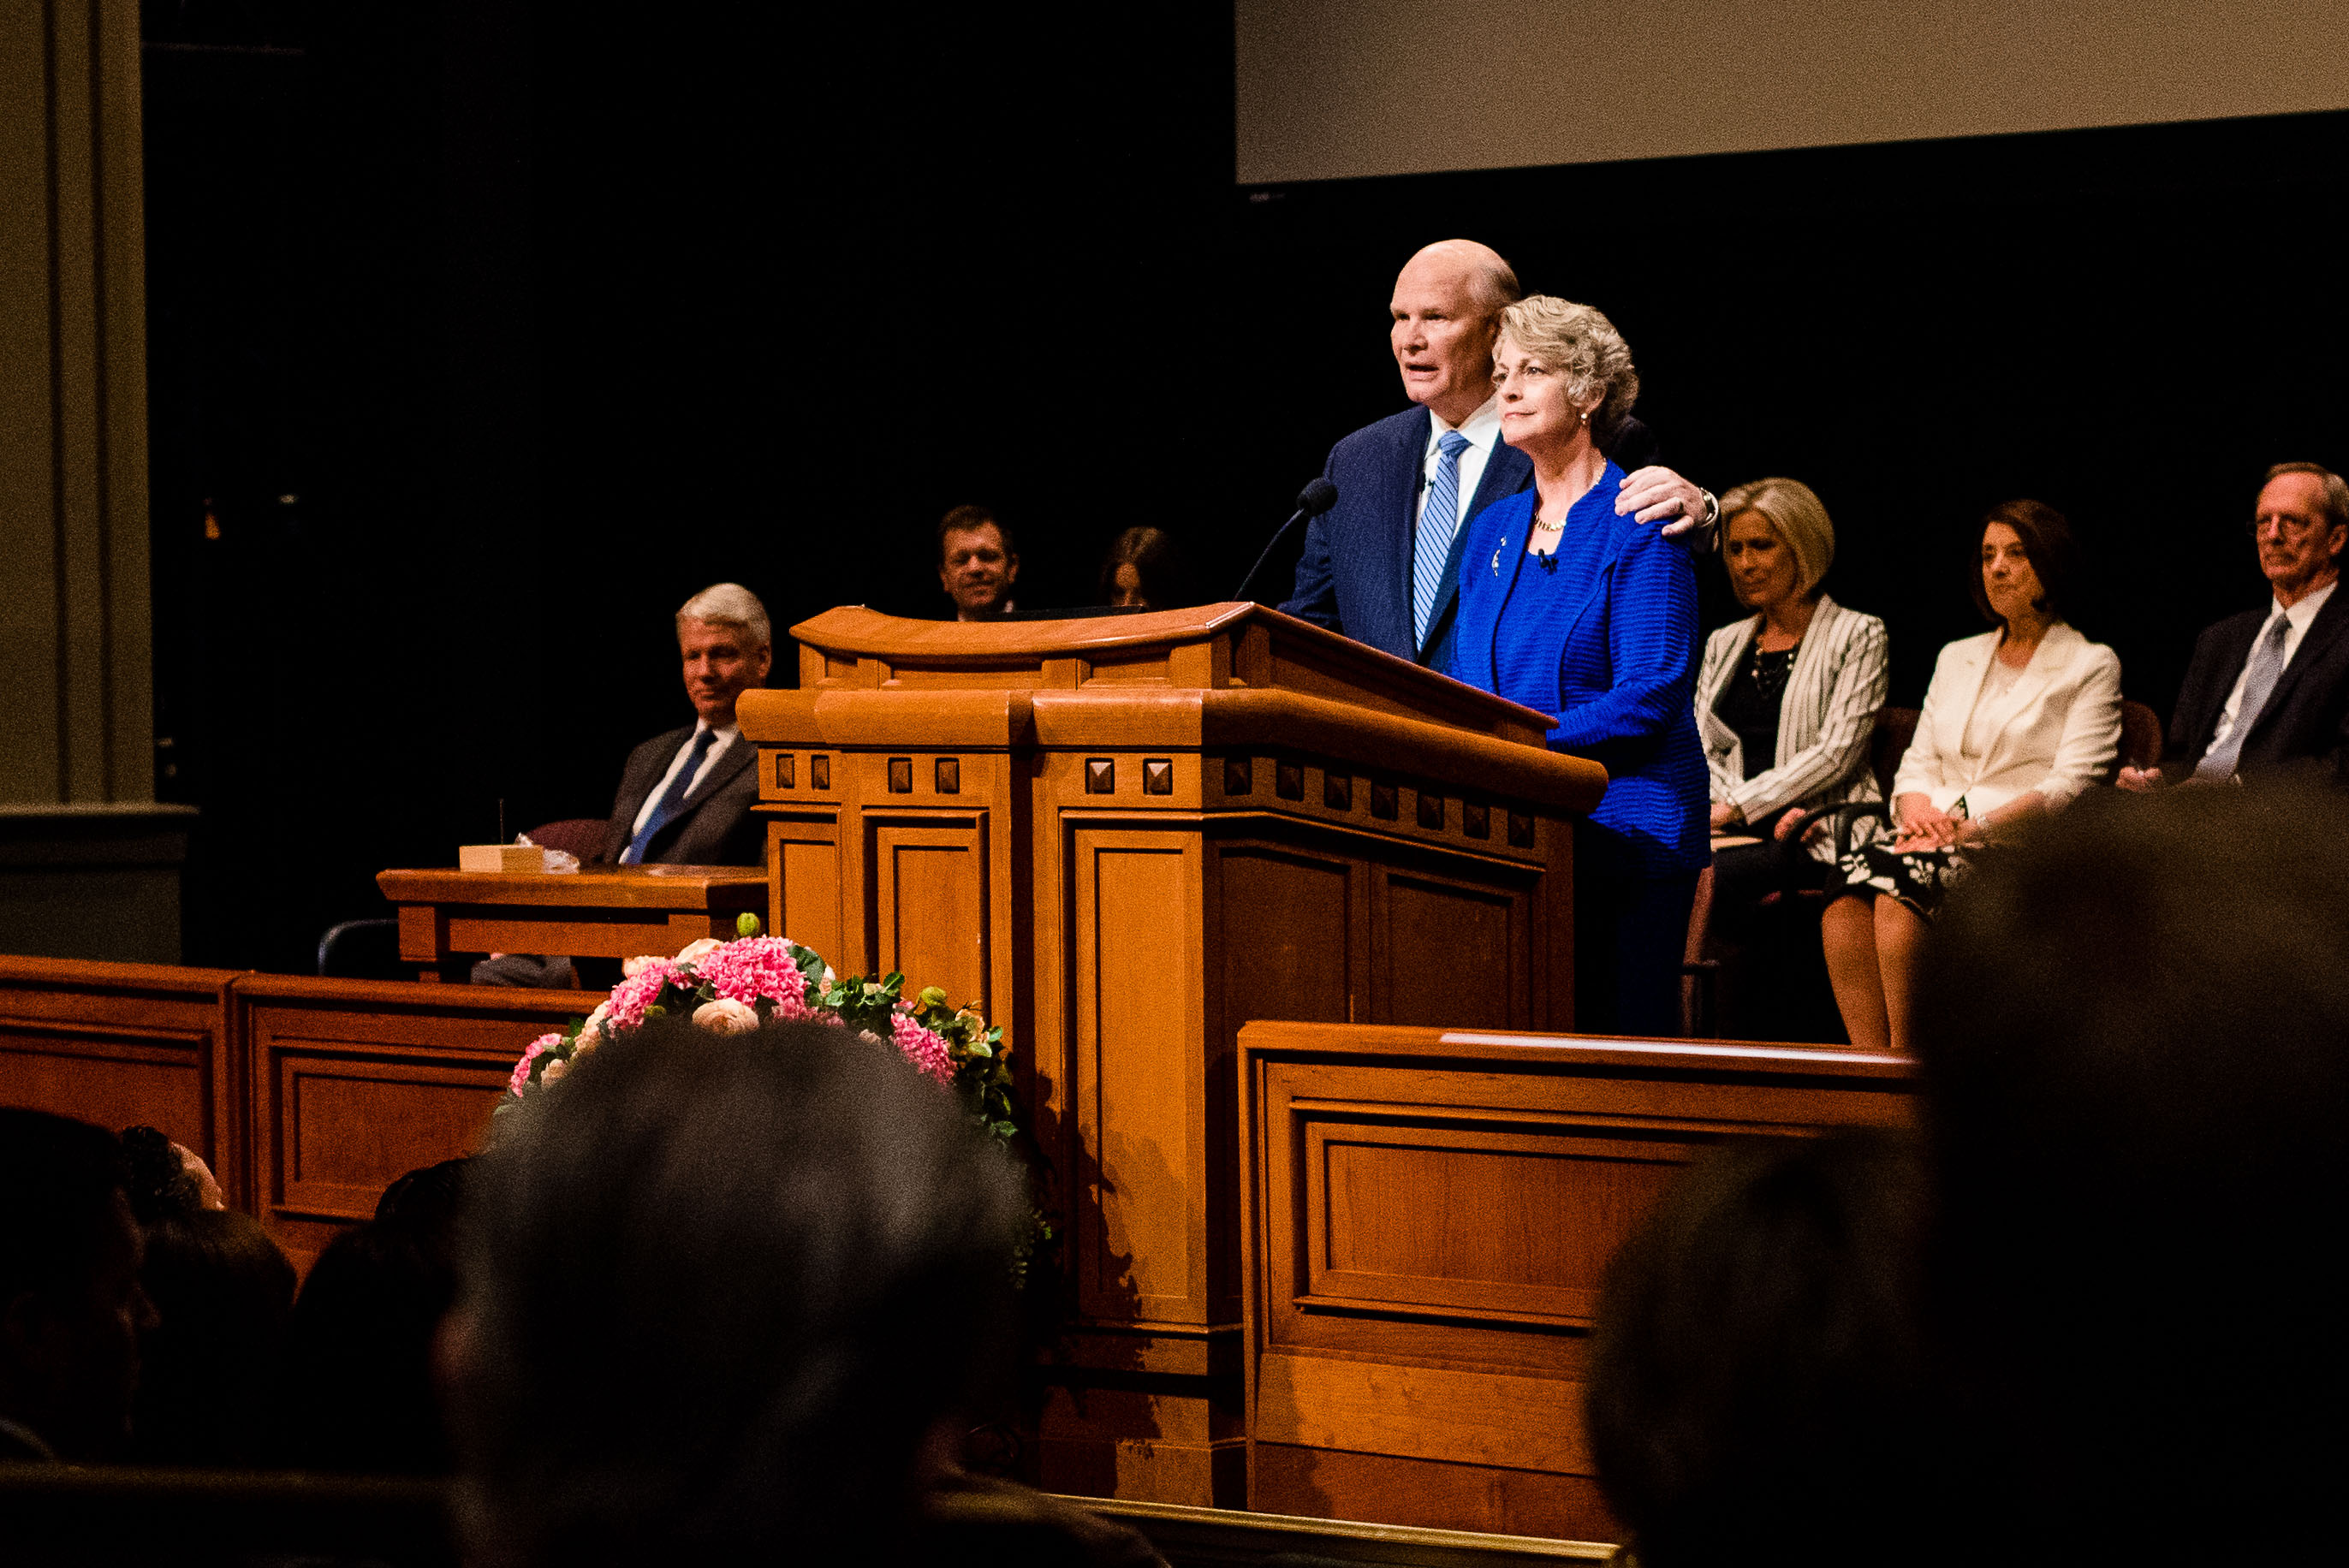 Elder Dale G. Renlund of the Quorum of the Twelve Apostles and his wife, Sister Ruth L. Renlund, speak during a broadcast for seminary and institute instructors held in the Conference Center Theater in Salt Lake City on June 12.